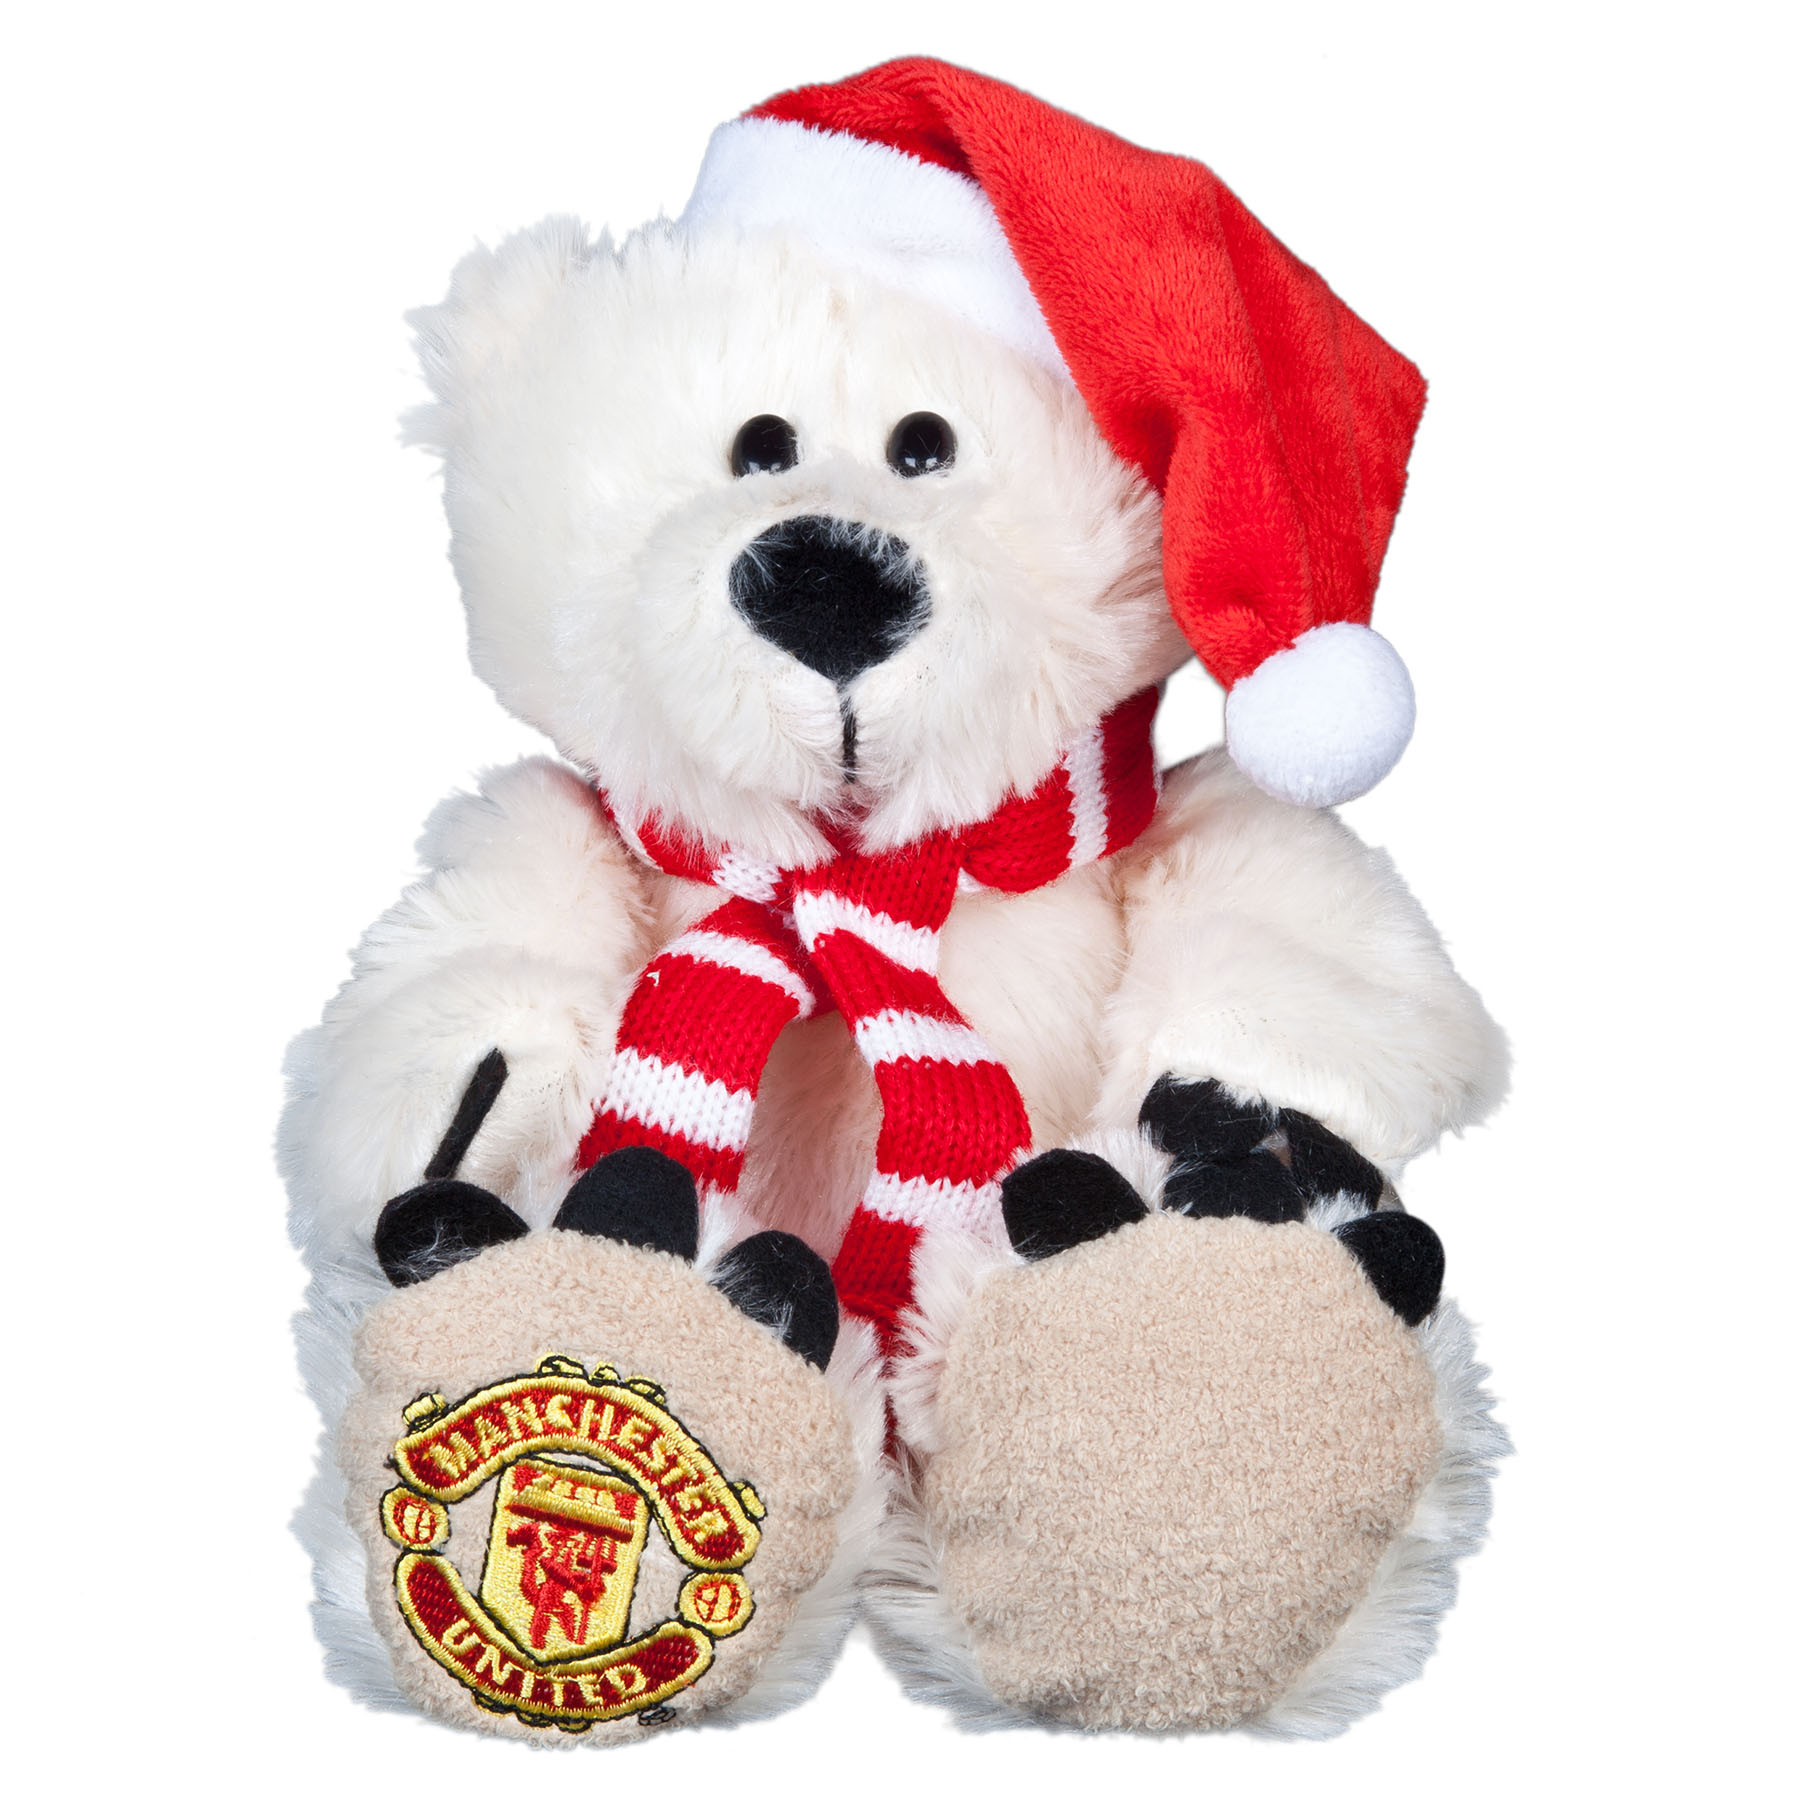 Manchester United Christmas Polar Bear with Hat & Scarf - 8 Inch